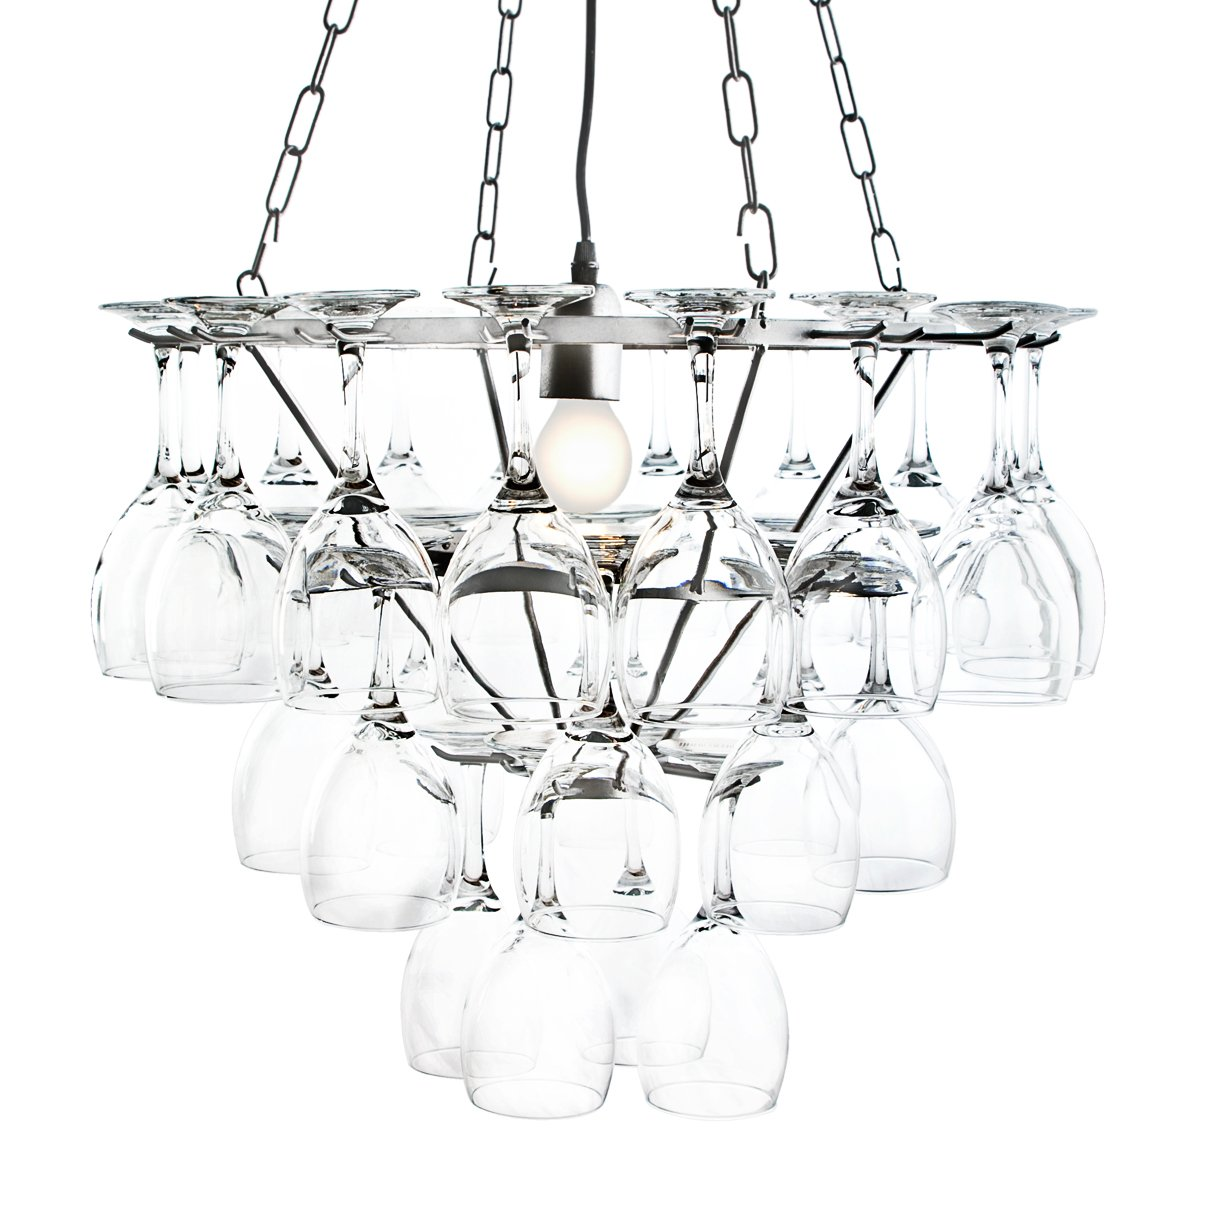 3 Tier Wine Glass Chandelier   Silver       review